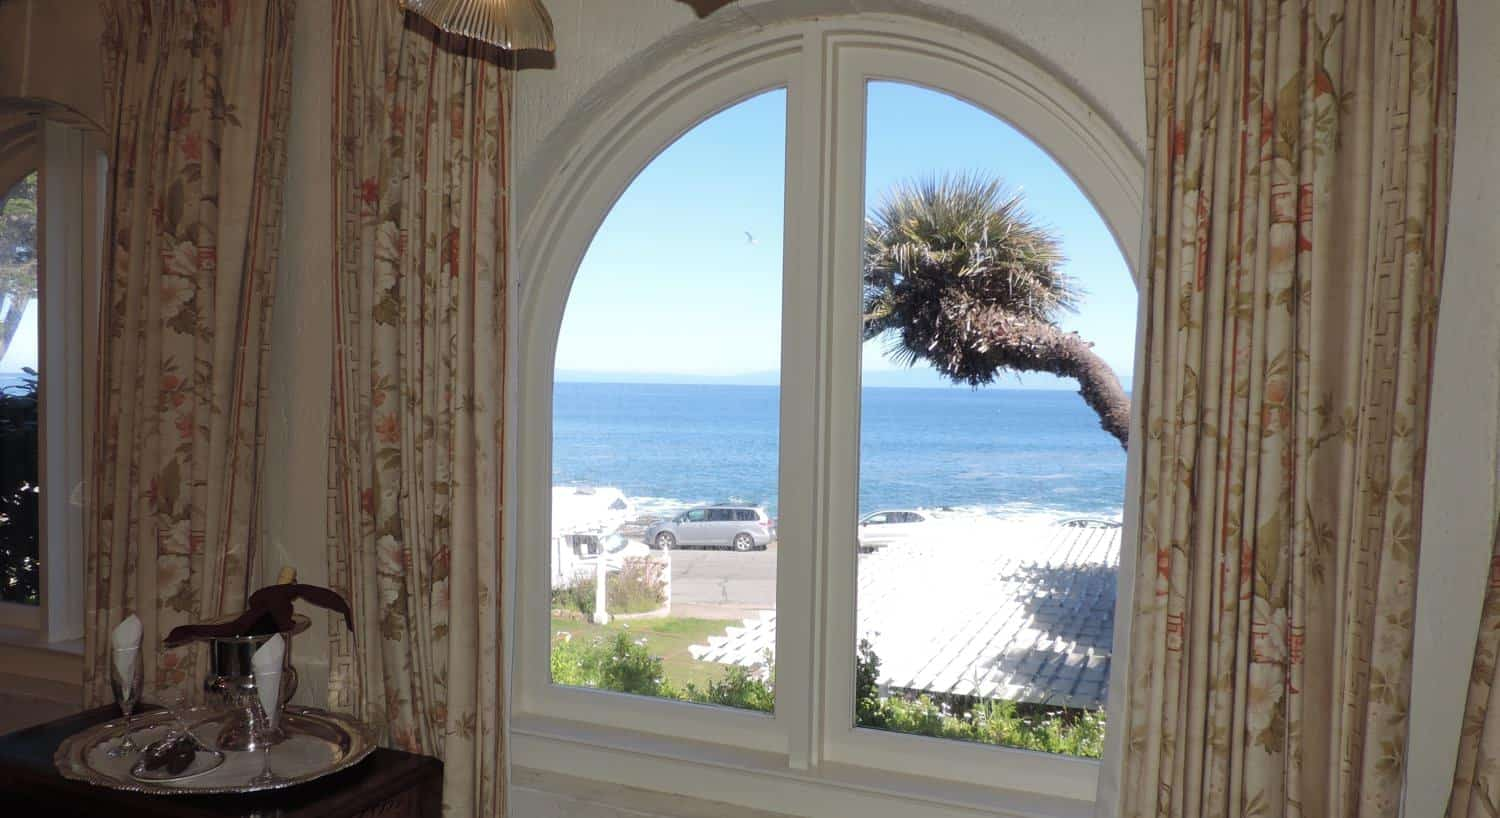 Eastlake guest room's arched double window overlooking the Bay